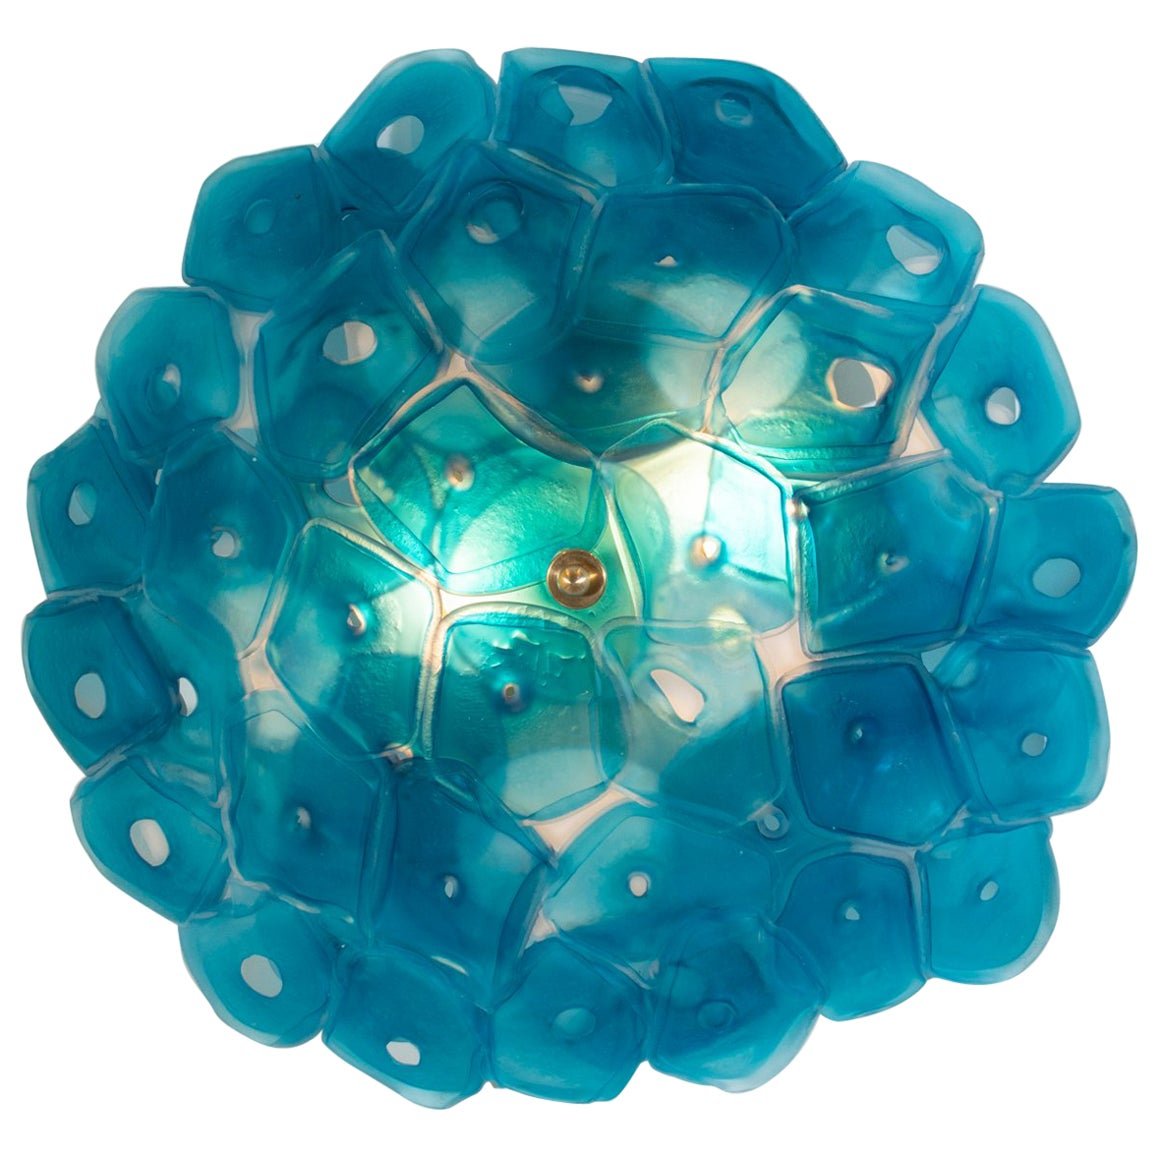 Sculptural Wall Sconce in Slumped and Fused Blue Glass by Jeff Zimmerman, 2018